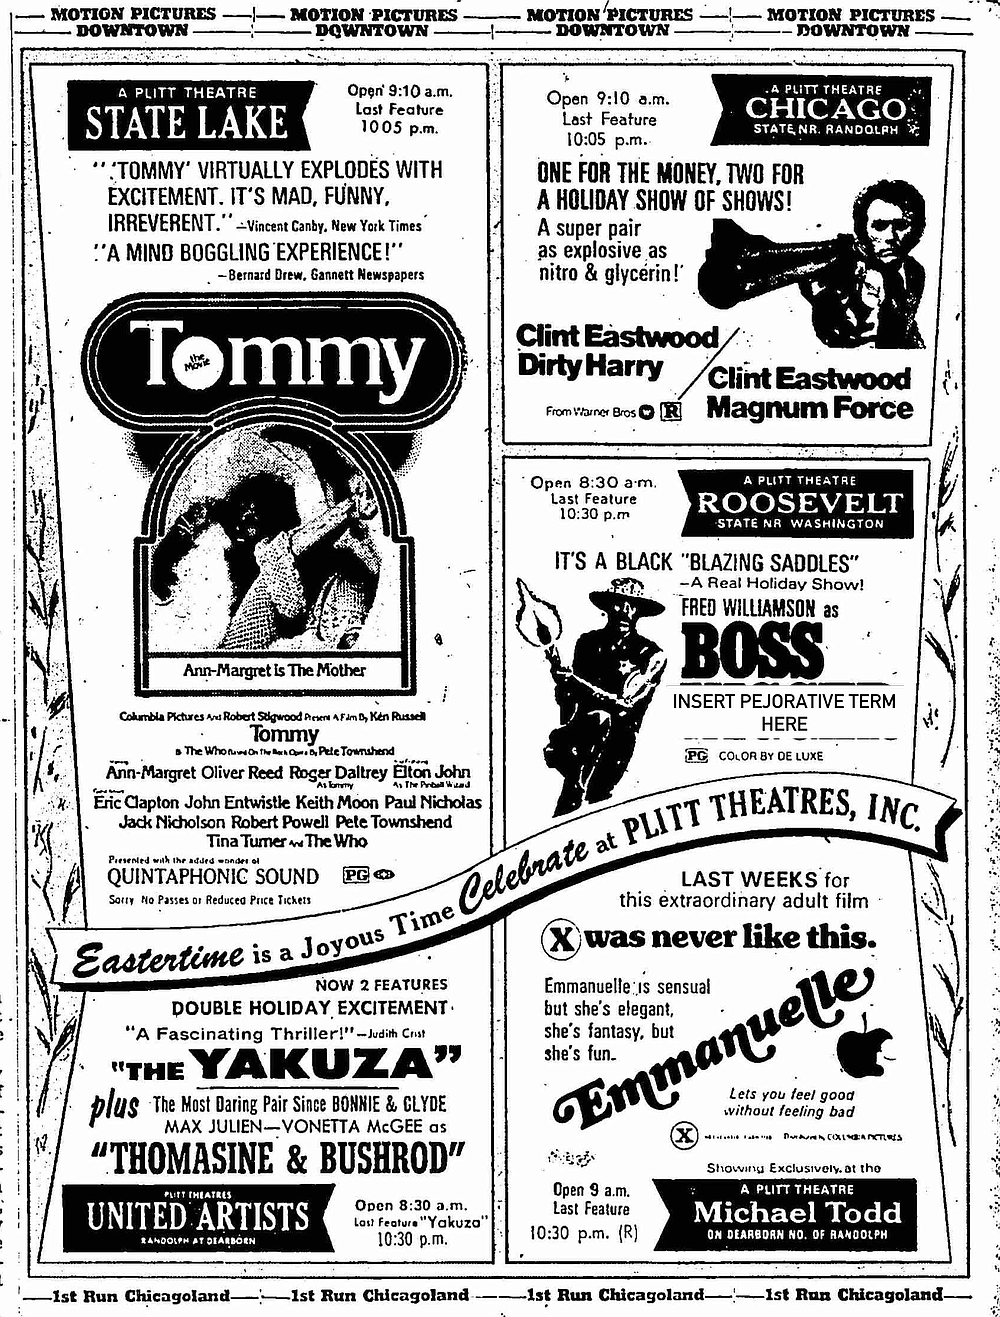 """Magnums, flesh, karate, blaxploitation, and Quadrophonic sound! It truly was a joyous time. """"The Chicago Tribune,"""" March 30, 1975."""